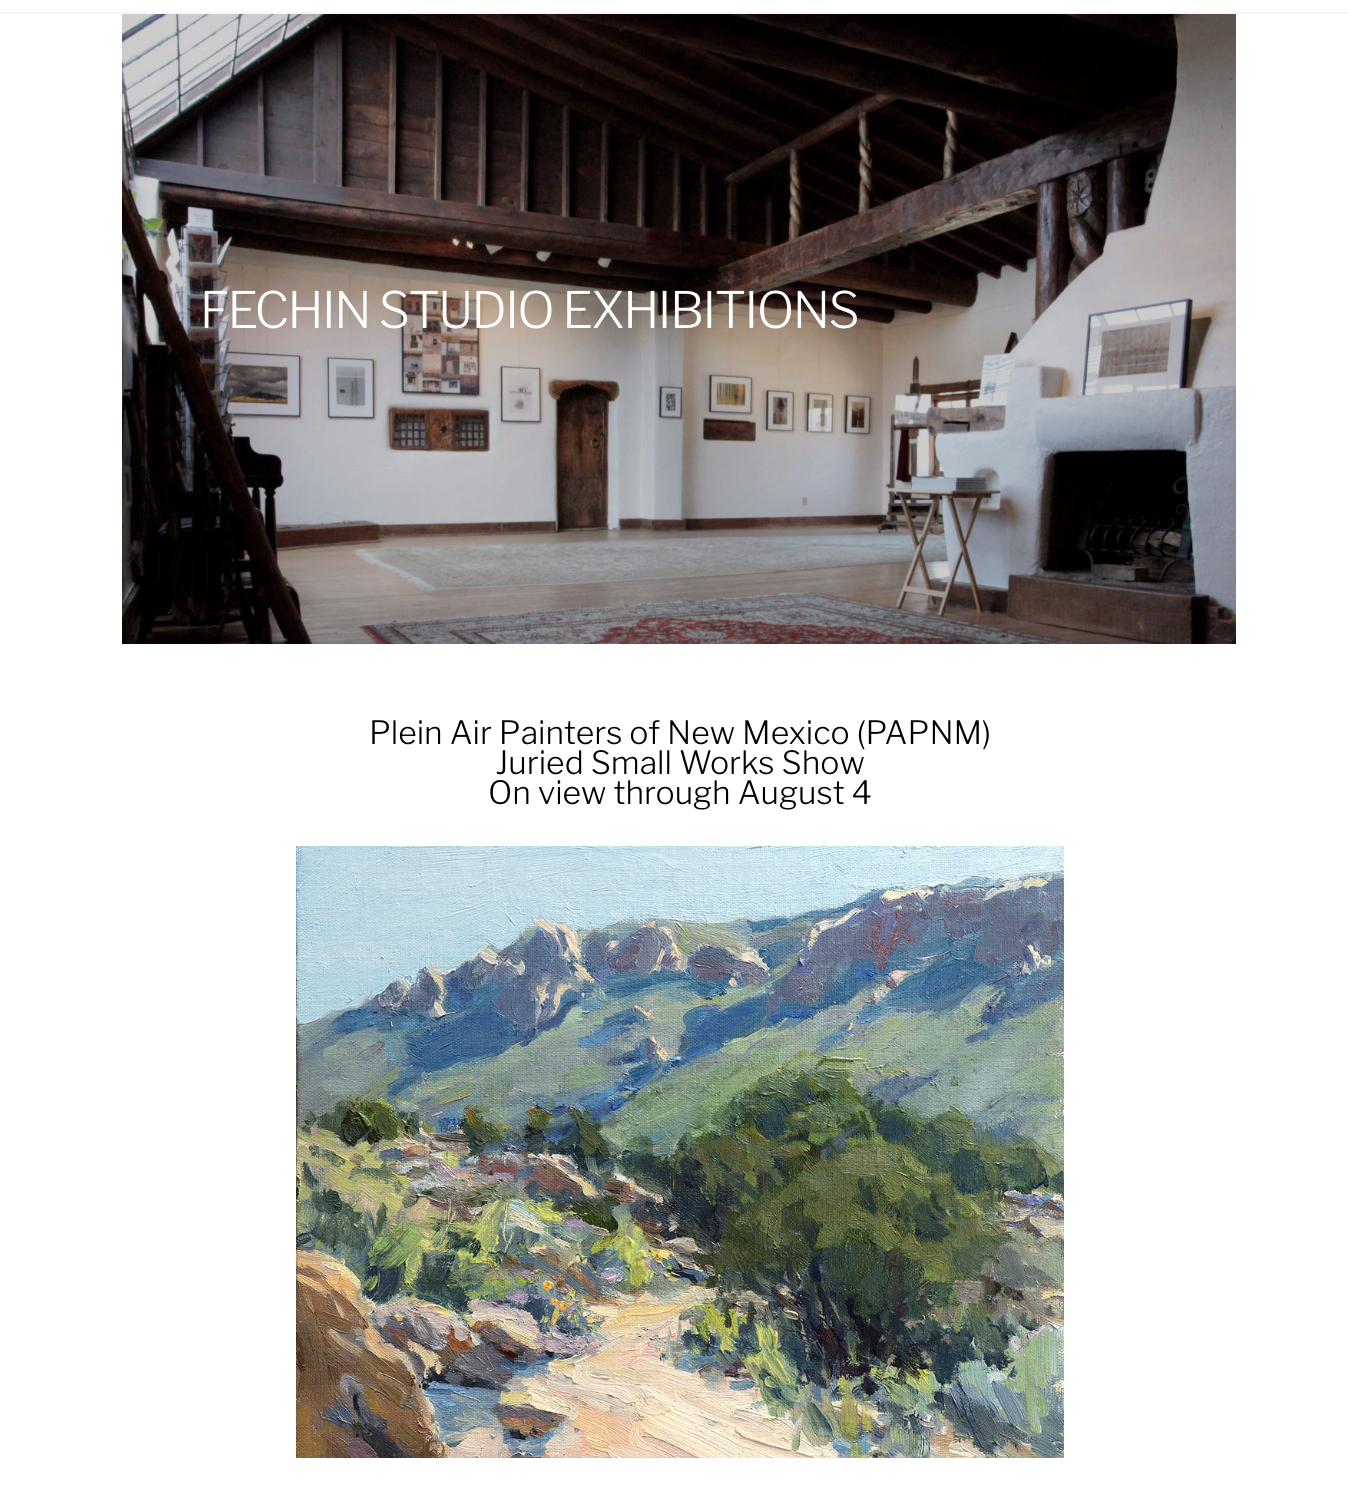 """PAPNM Award! - It's an honor to announce that one of my newest paintings, """"Tres Pistoles"""" was given an Award of Excellence at the Taos Art Museum at Fechin House for the Plein Air Painters Juried Small Paintings Show.Show is on view through August 4th at the lovely Fechin House on Paseo del Peralta in Taos, NM, so please stop by if you are in the area!"""